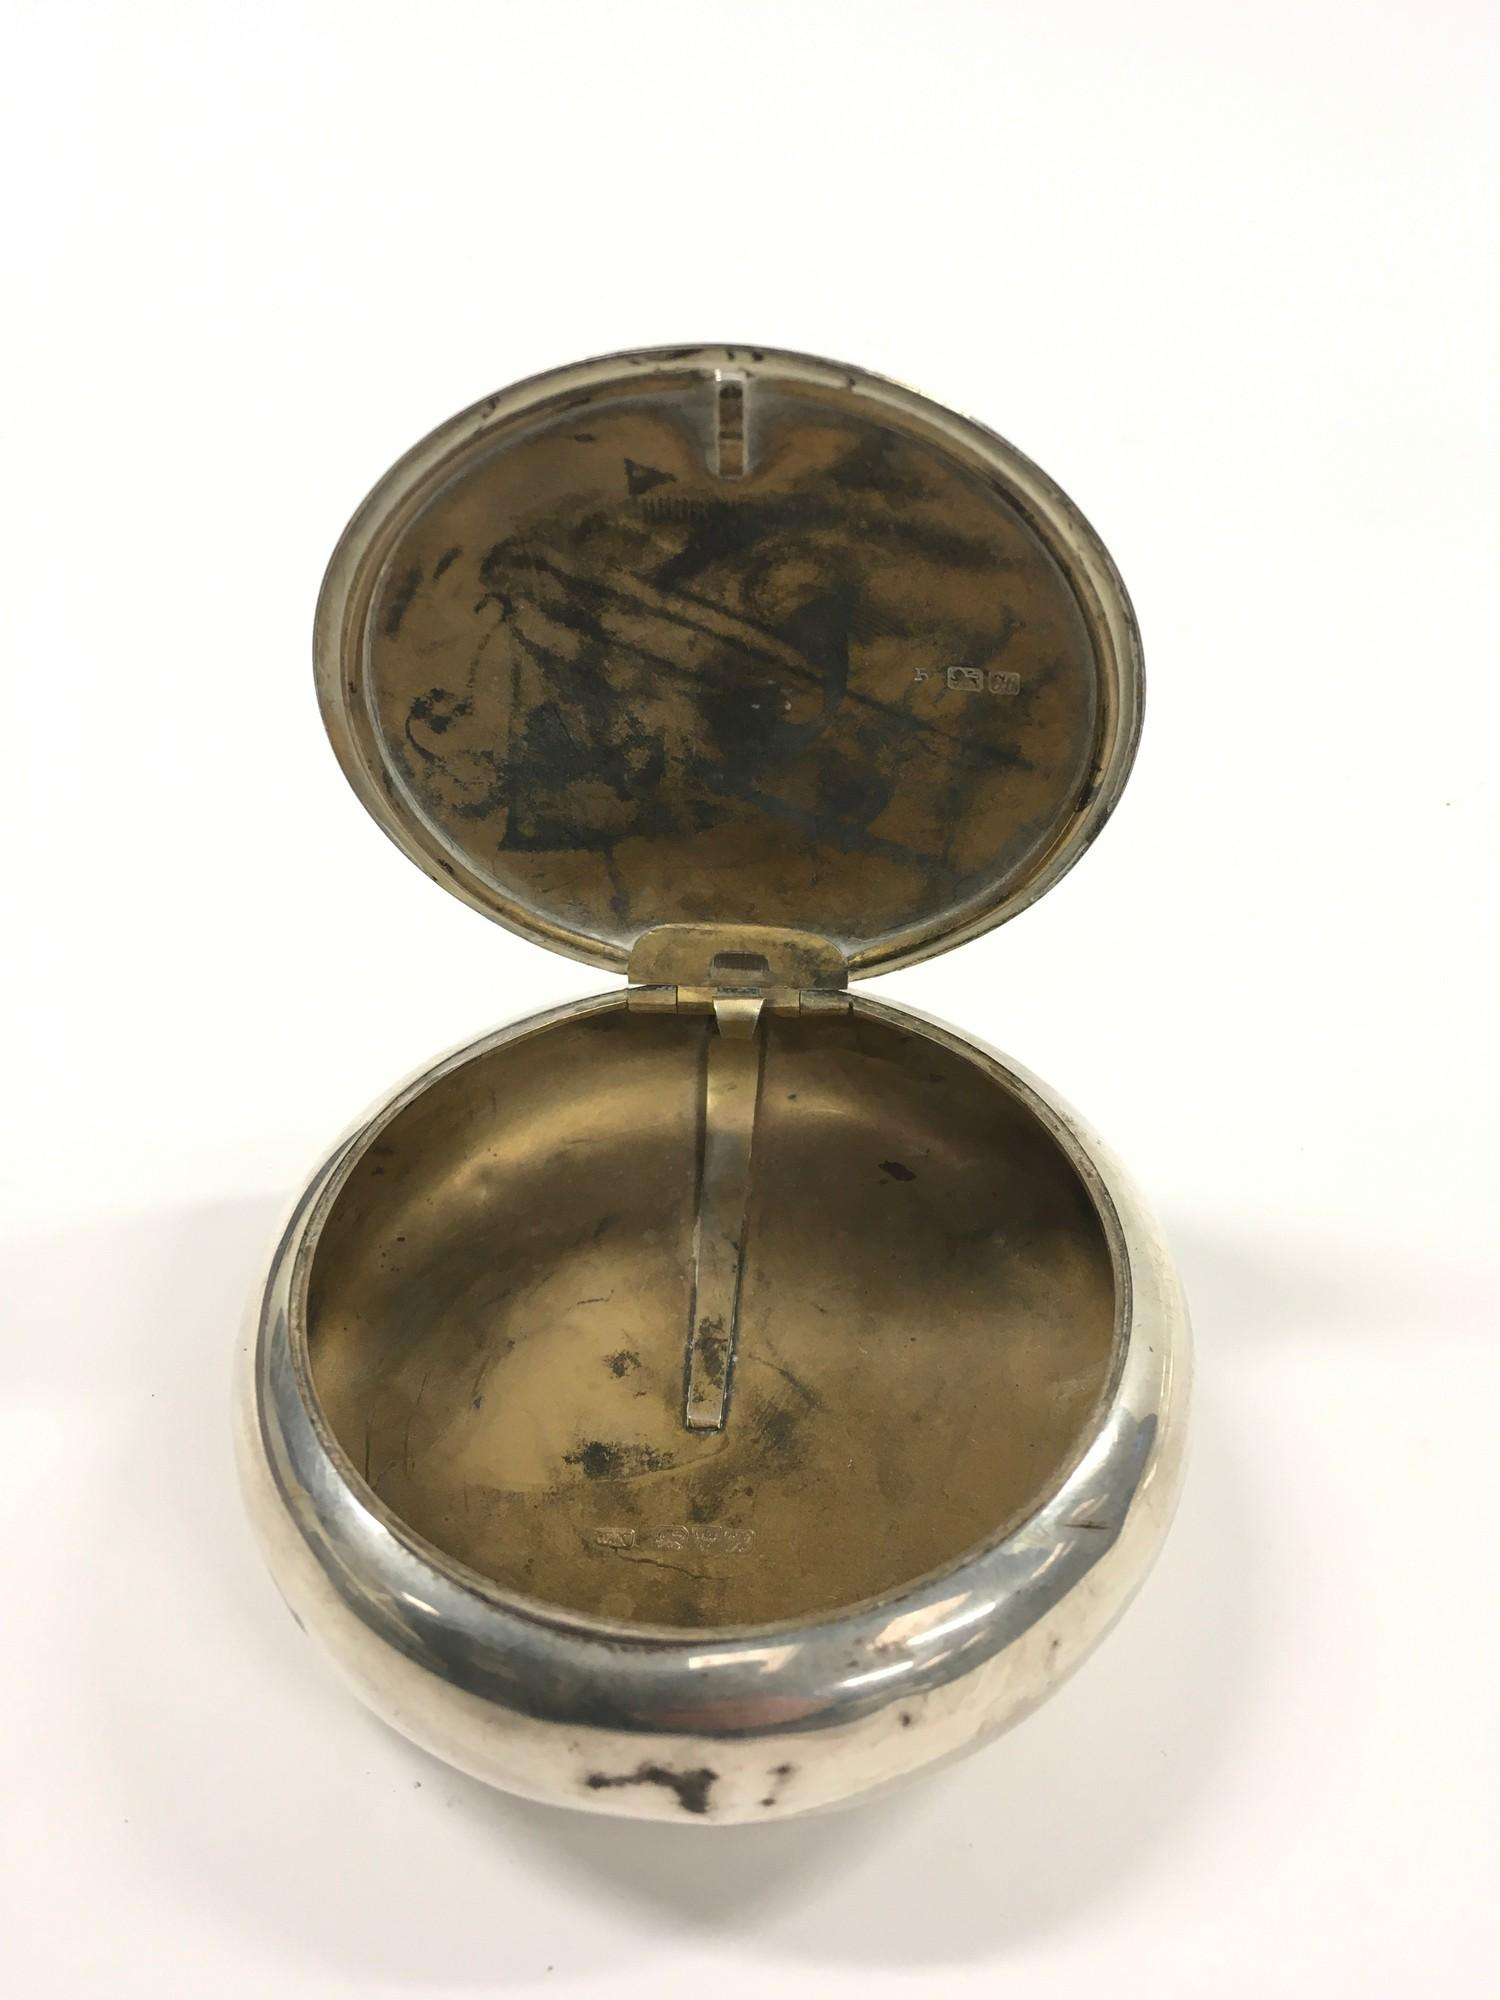 Chester 1908 Solid Silver Tobacco Tin with Gilt Interior. - Image 2 of 2